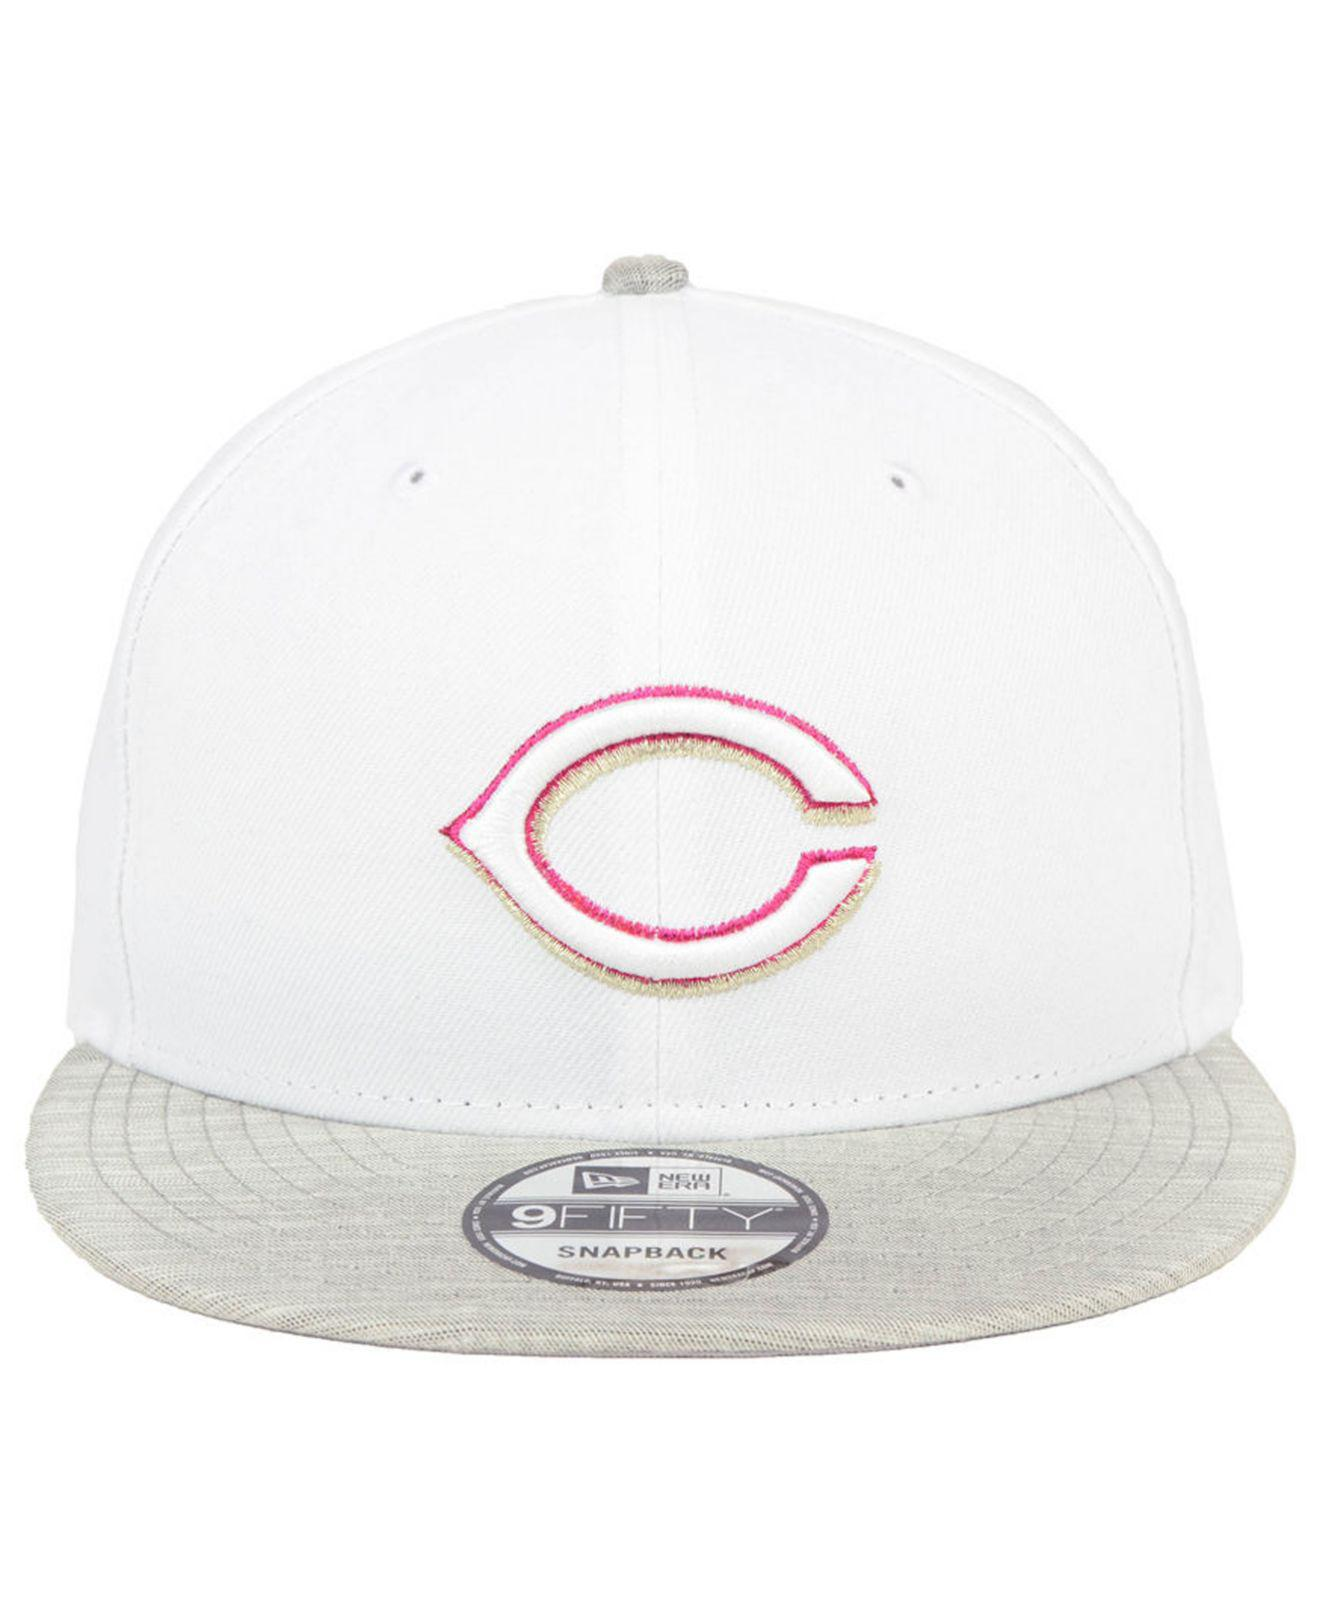 finest selection f5ab7 3569a ... ireland lyst ktz cincinnati reds bright heather 9fifty snapback cap in  white for men 60ec0 44821